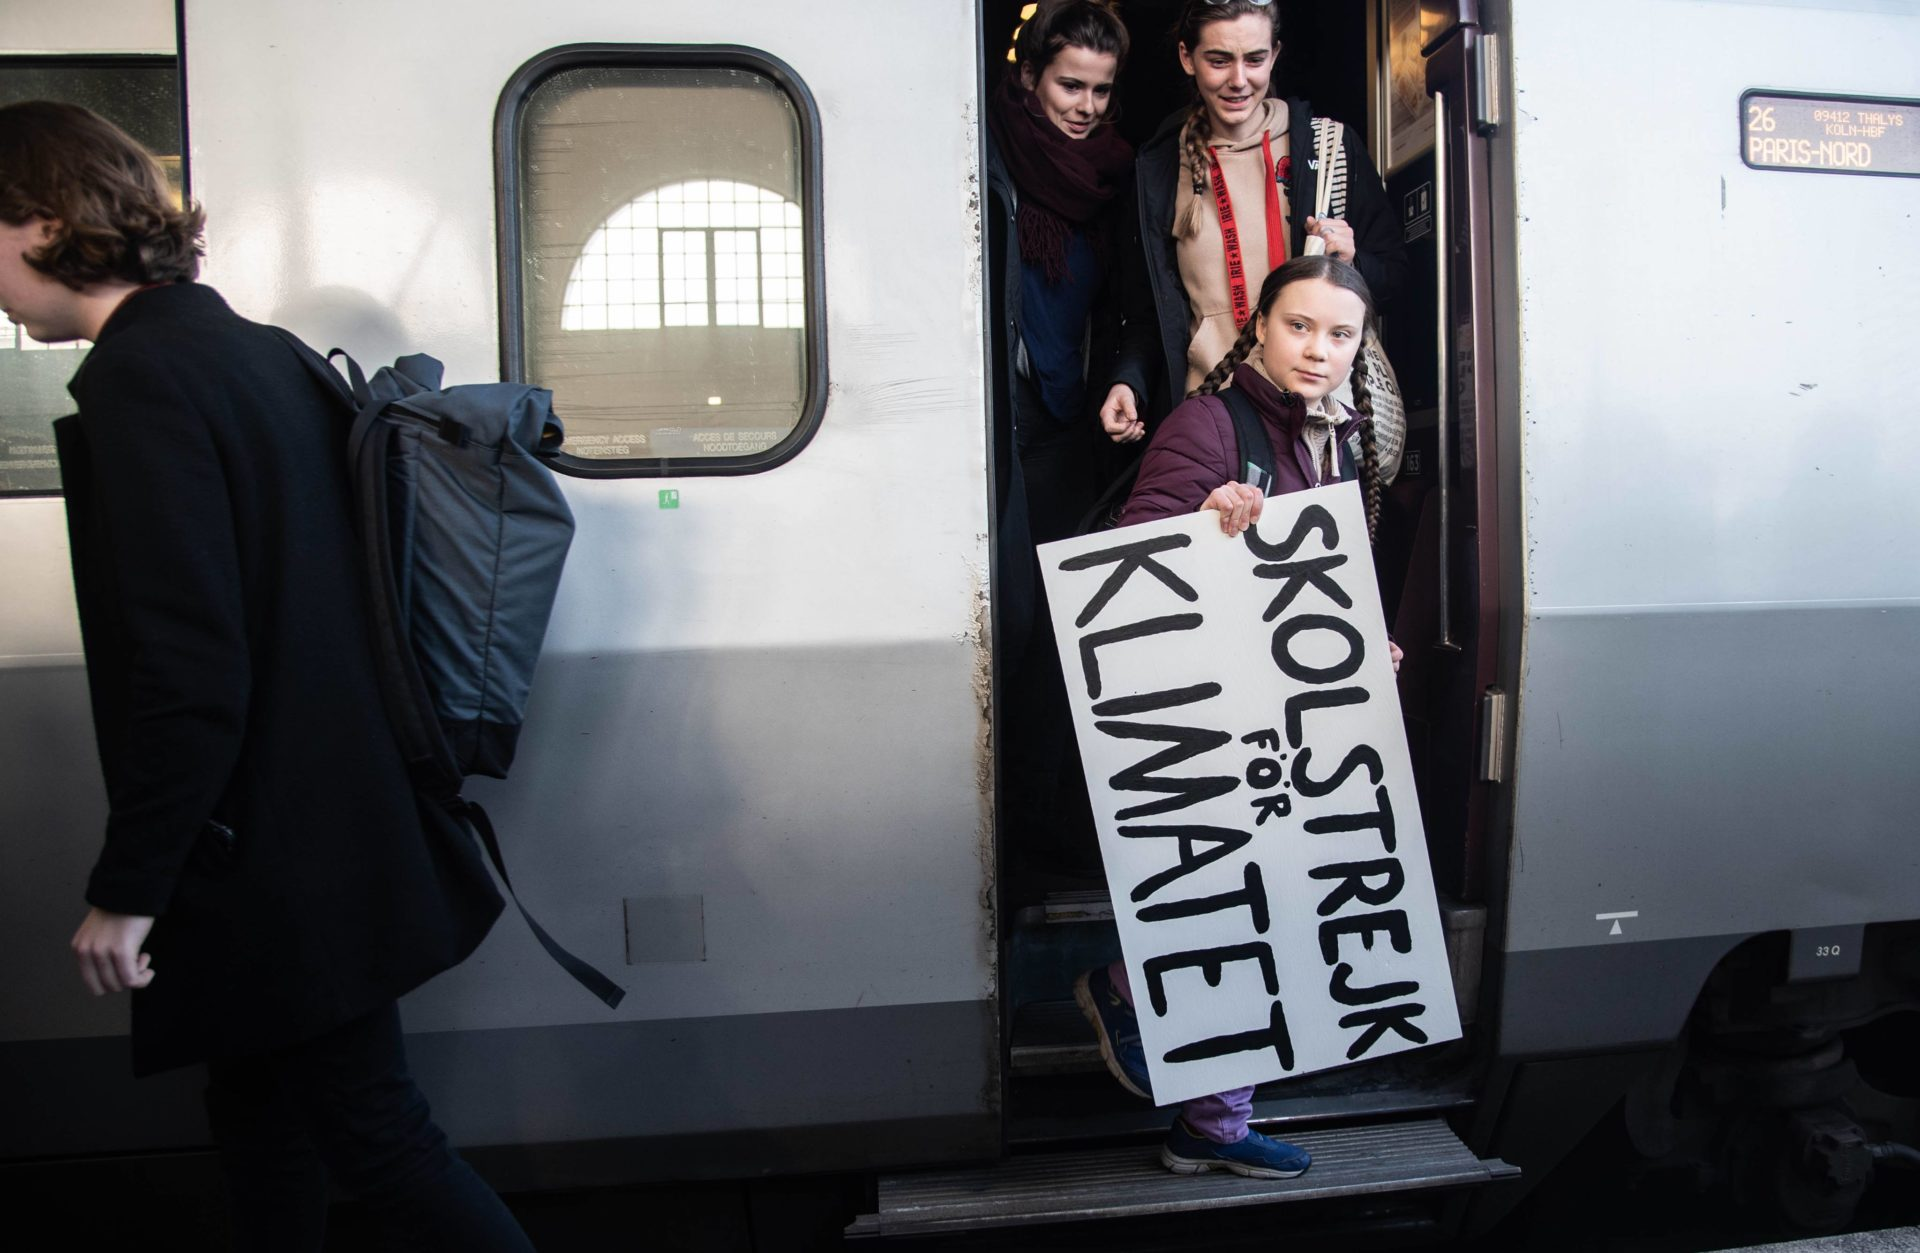 Greta Thunberg arrives in Paris by train